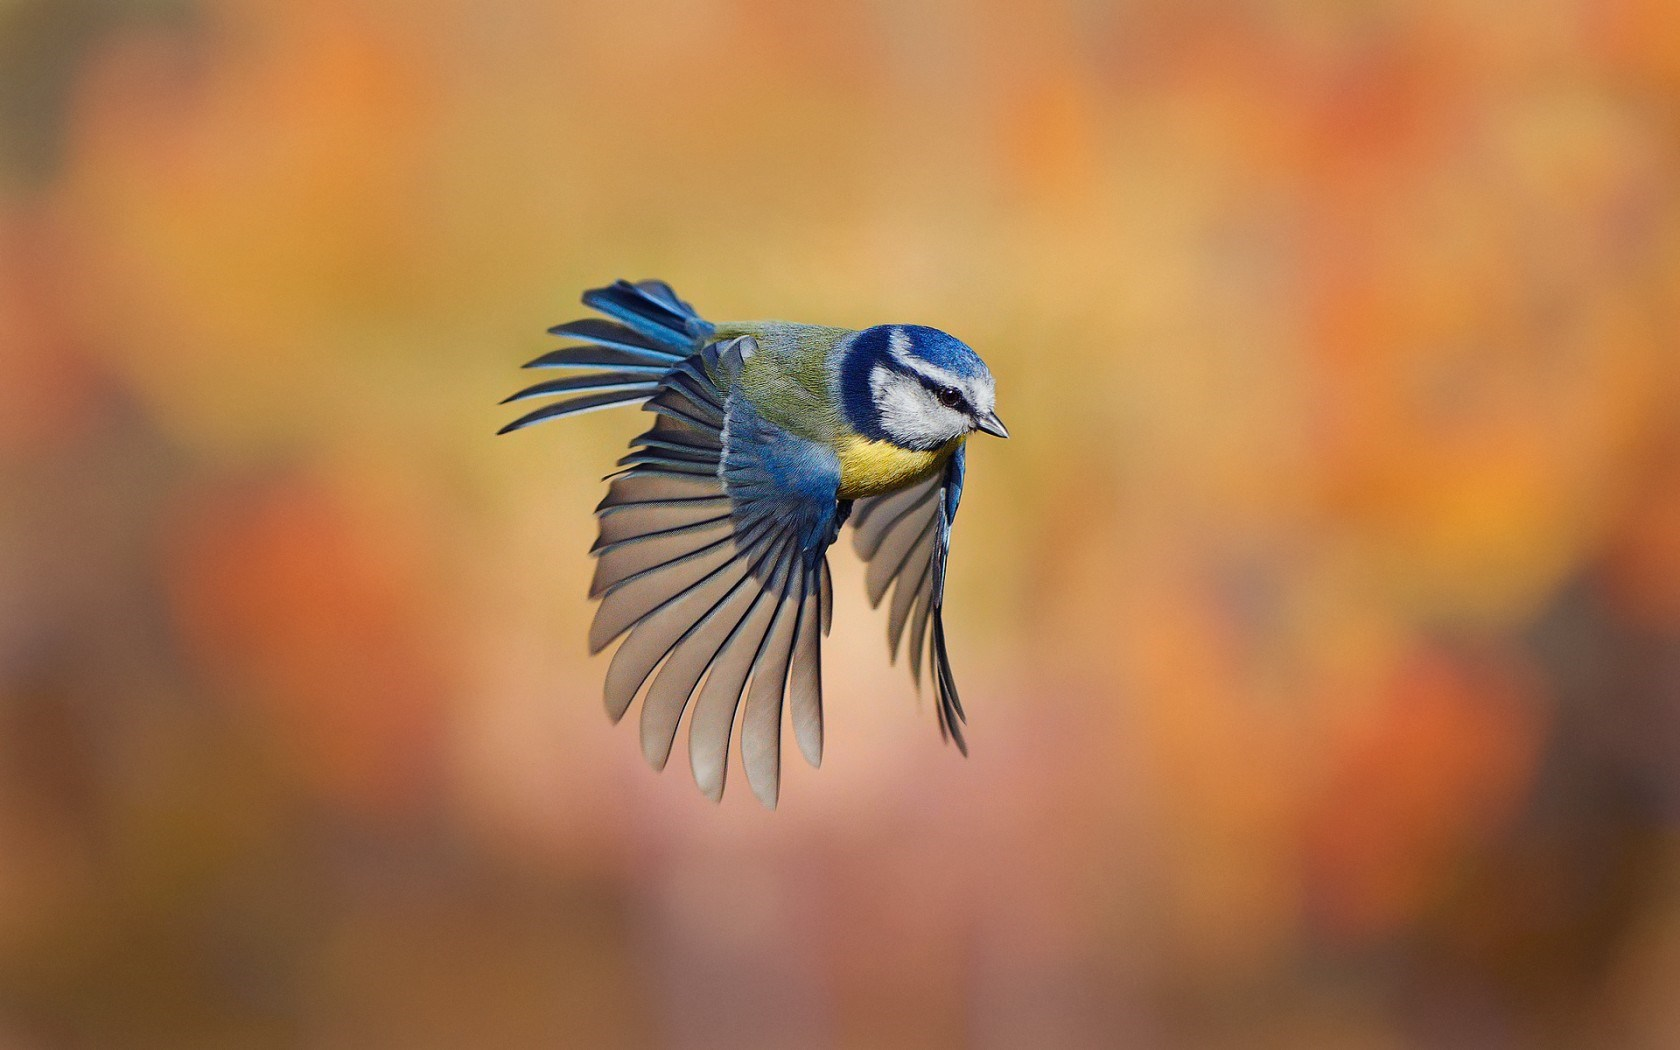 macro birds wallpaper | 1680x1050 | #13763